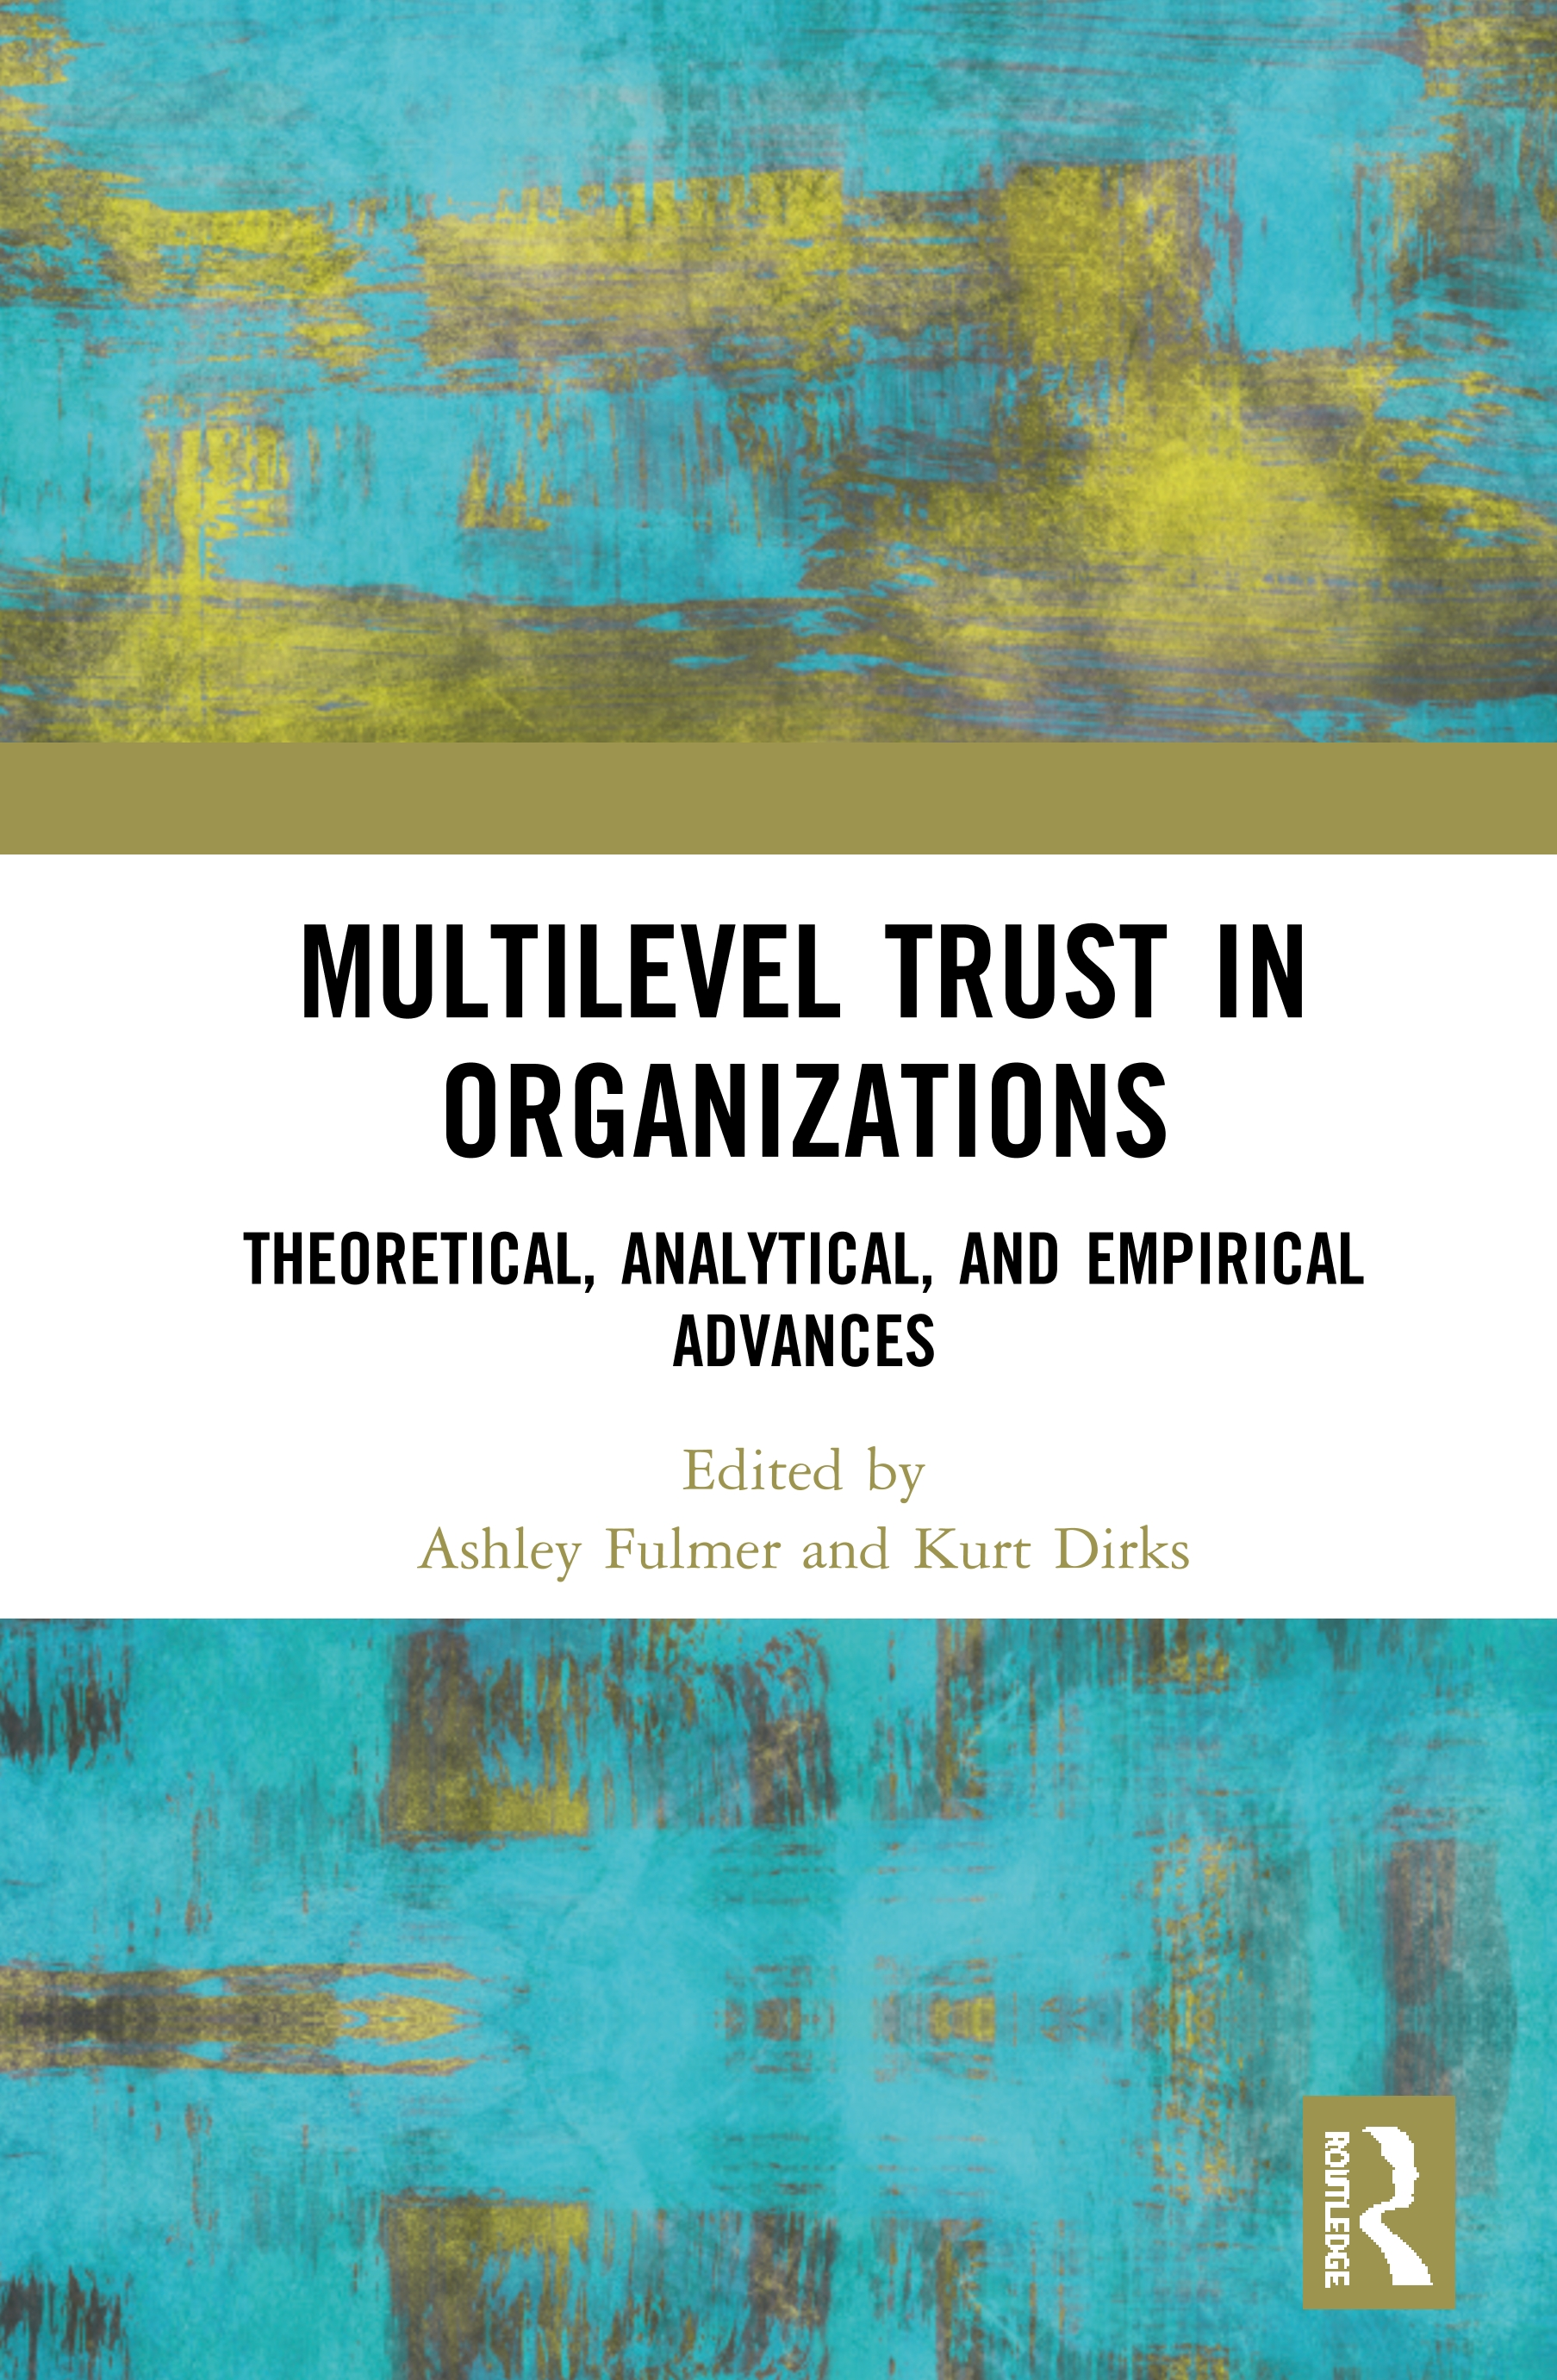 Multilevel Trust in Organizations: Theoretical, Analytical, and Empirical Advances, 1st Edition (Hardback) book cover